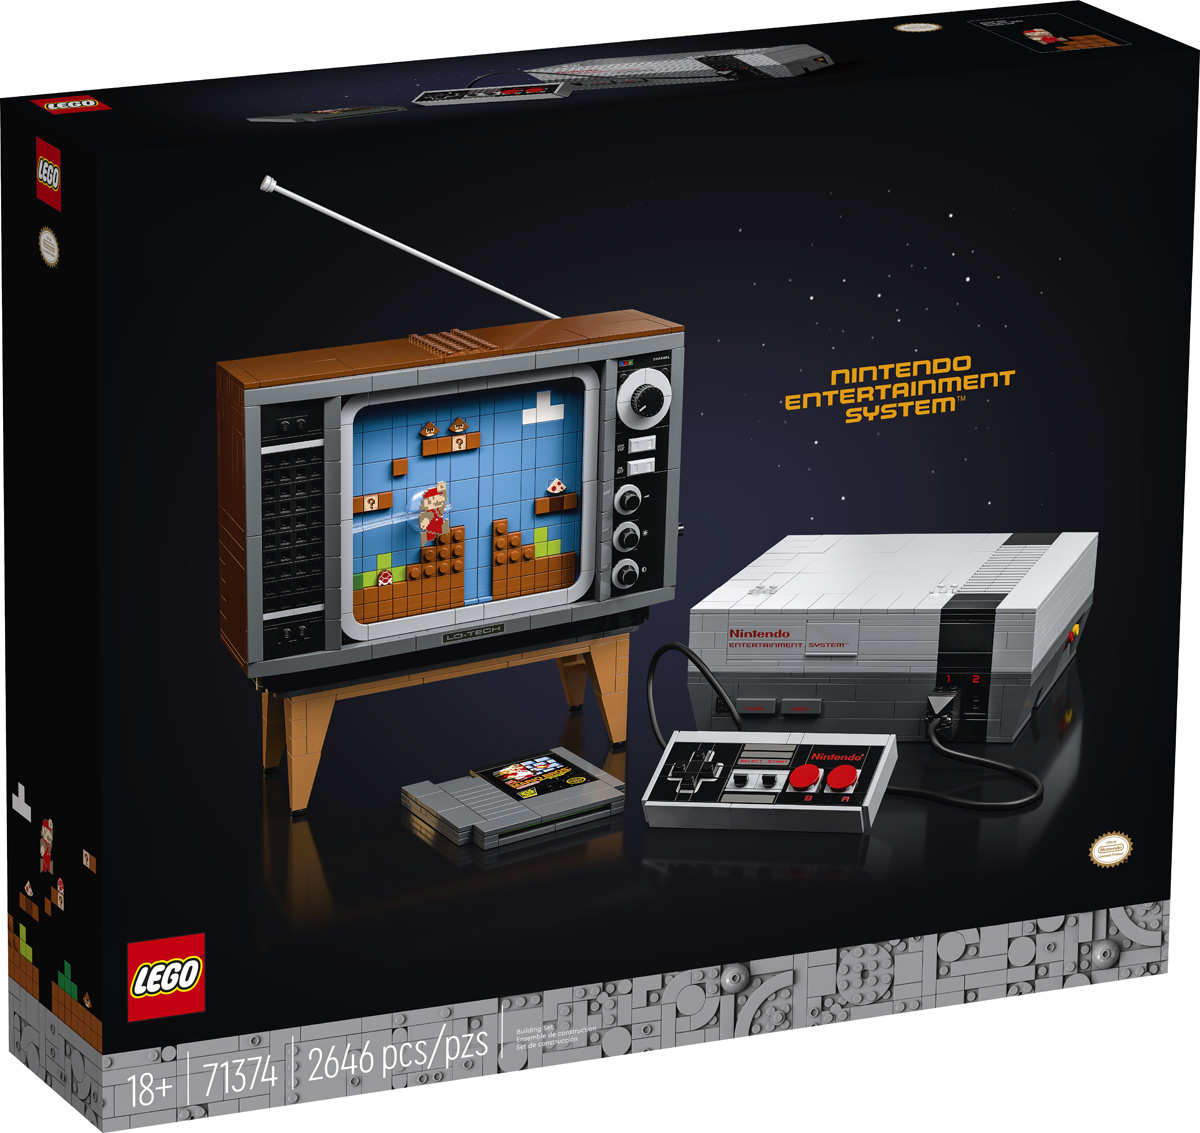 LEGO Nintendo Entertainment System Building Kit